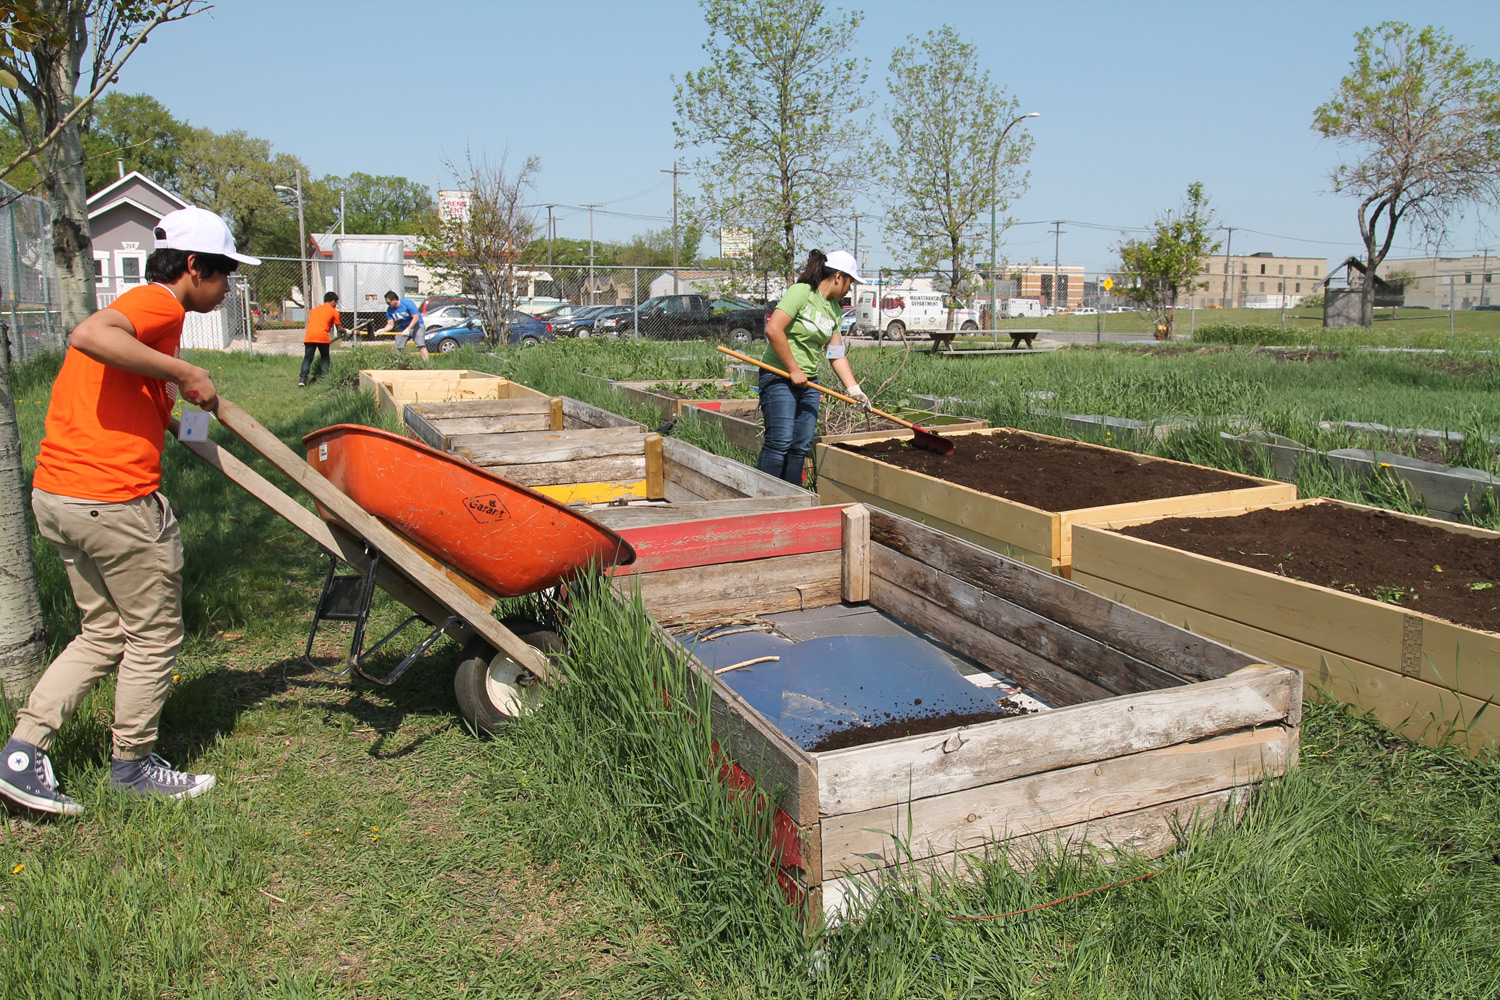 Youth helped prepare garden beds for newcomers at the Dufferin School Community Garden